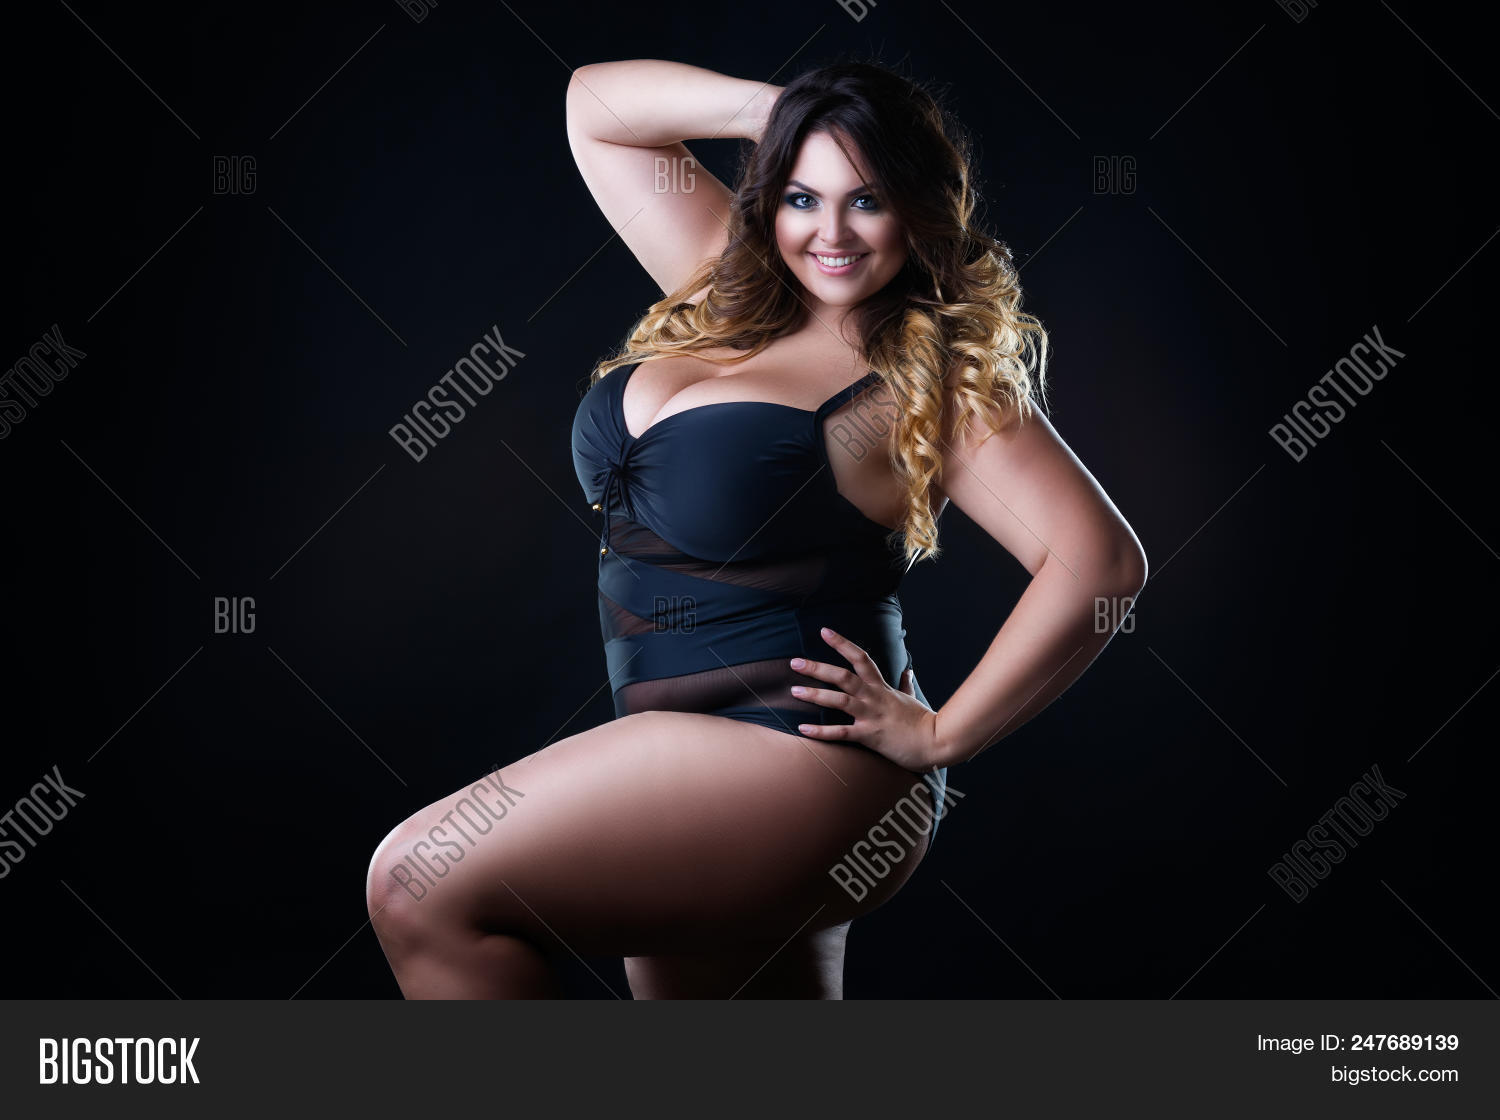 free sexy fat women pictures